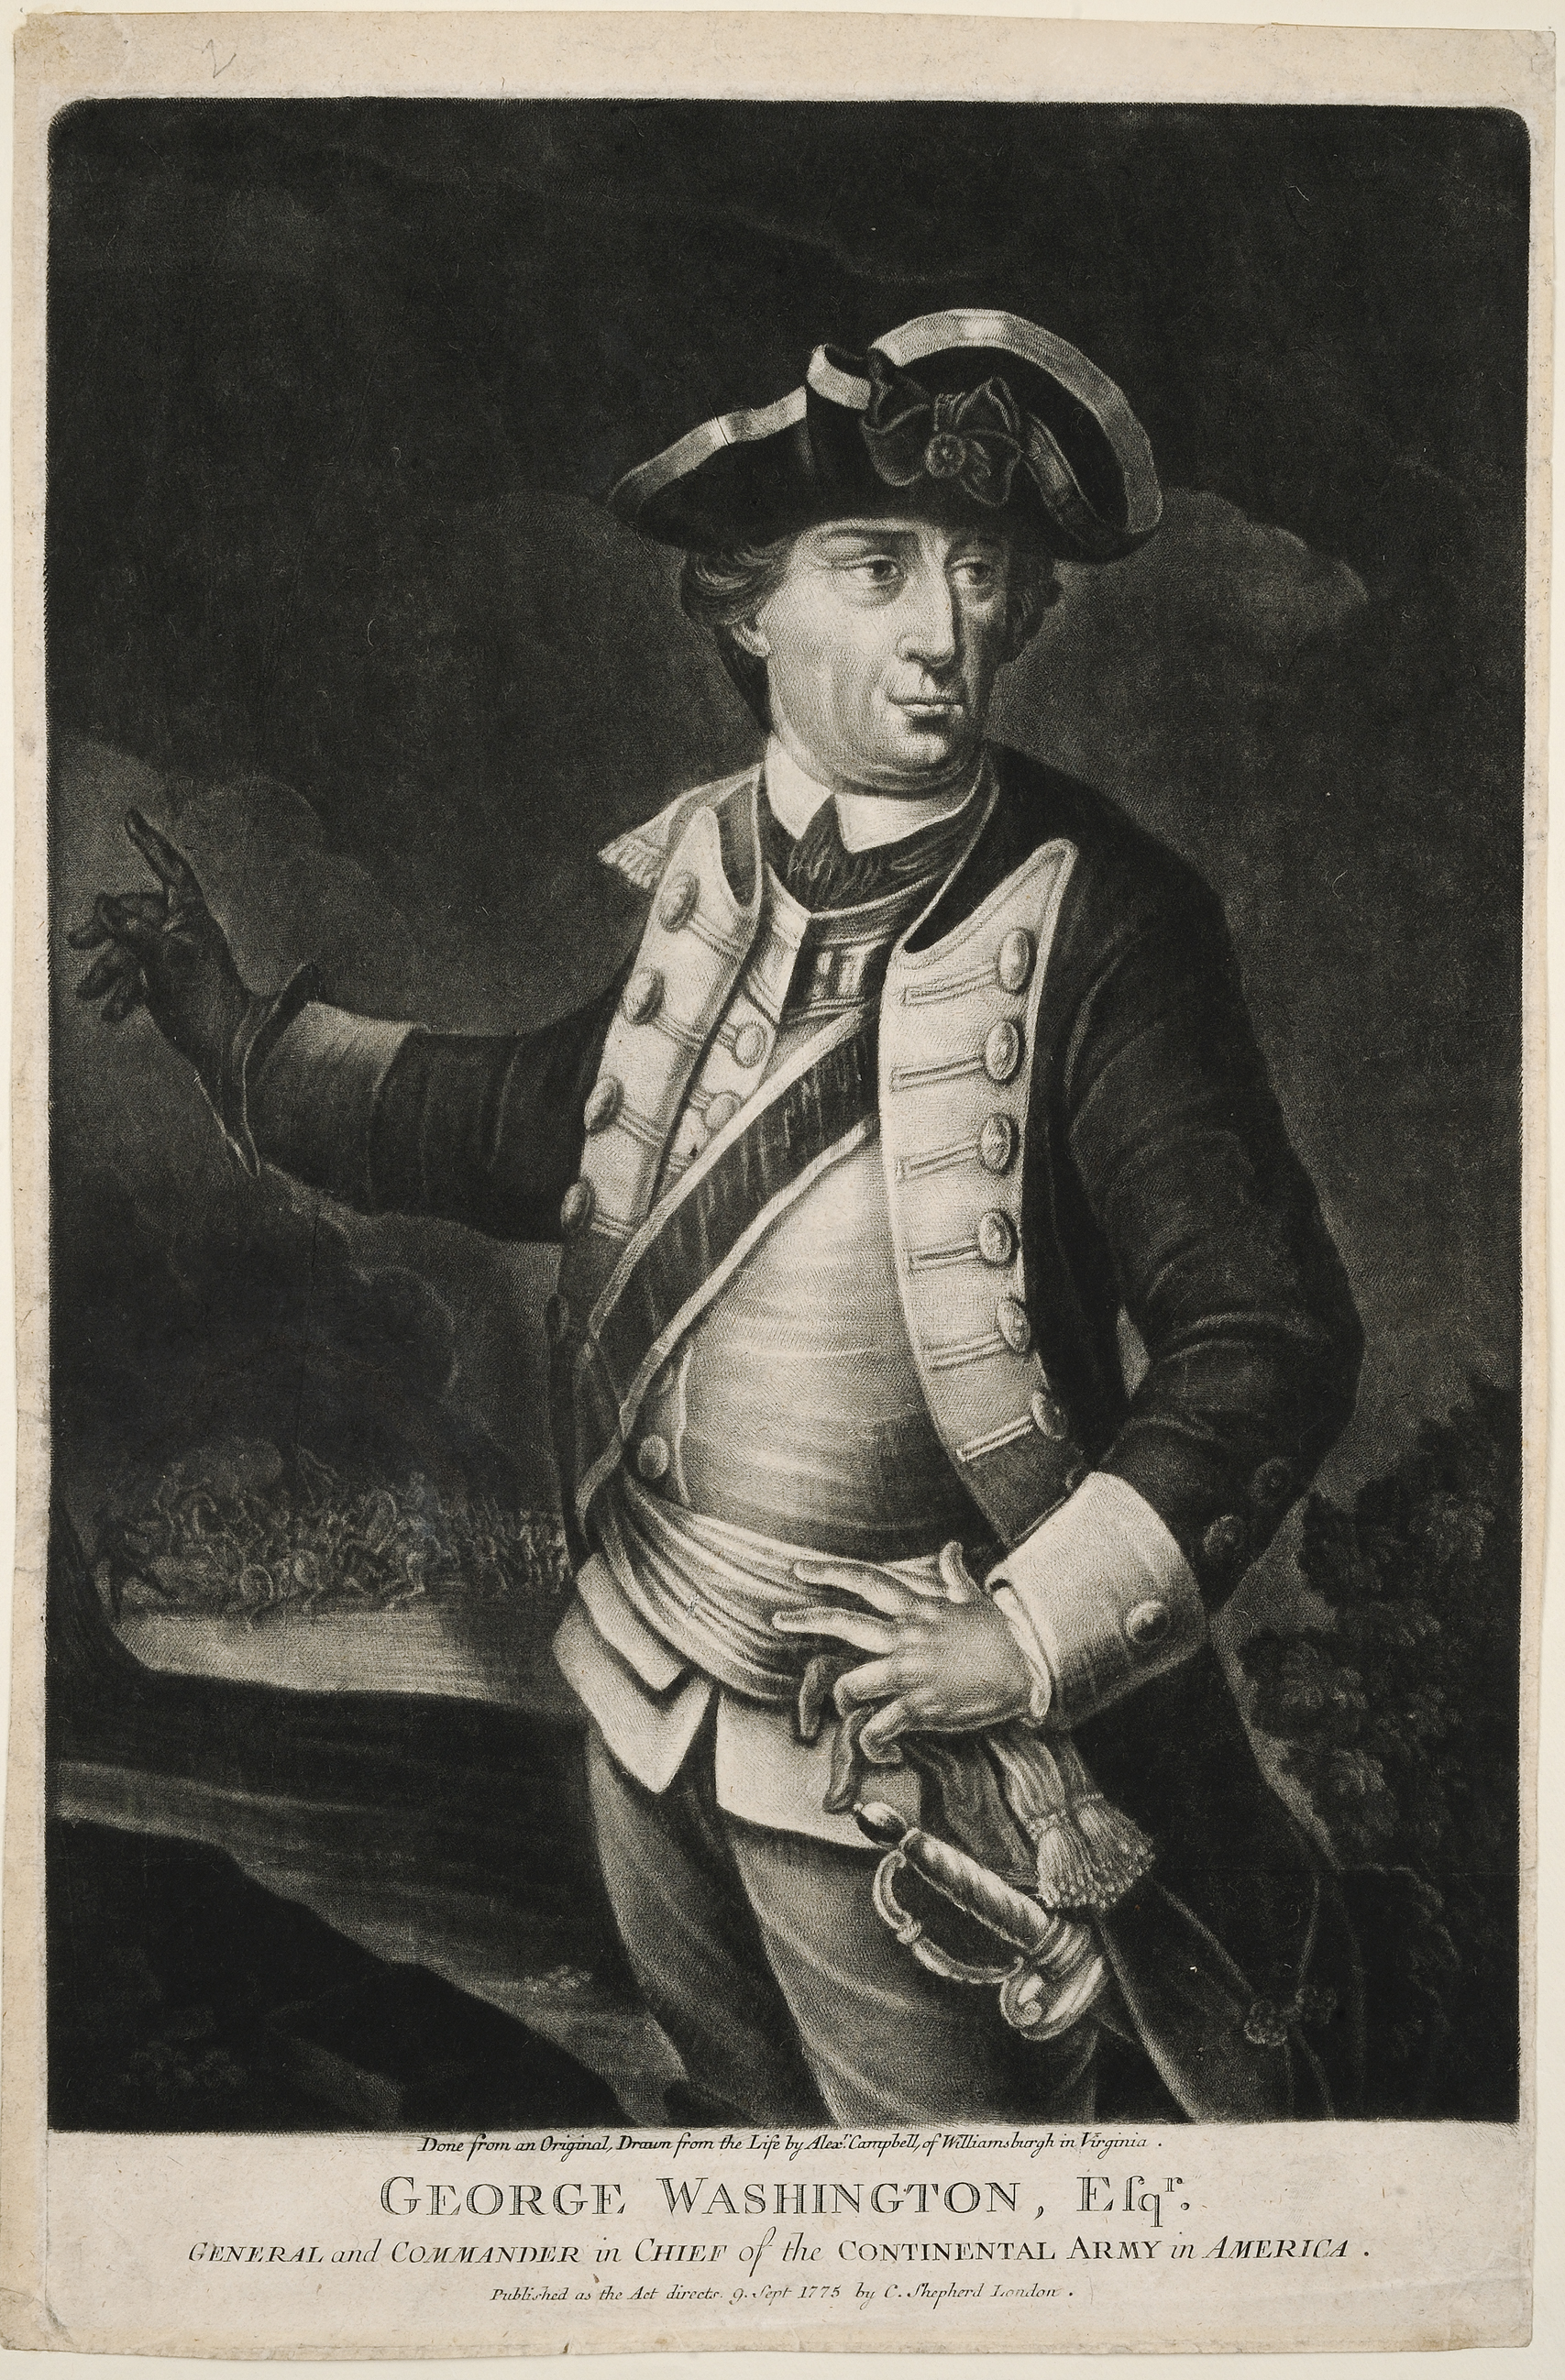 George Washington, Esqr. General and Commander in Chief of the Continental Army in America, London: C. Shepherd, 1775